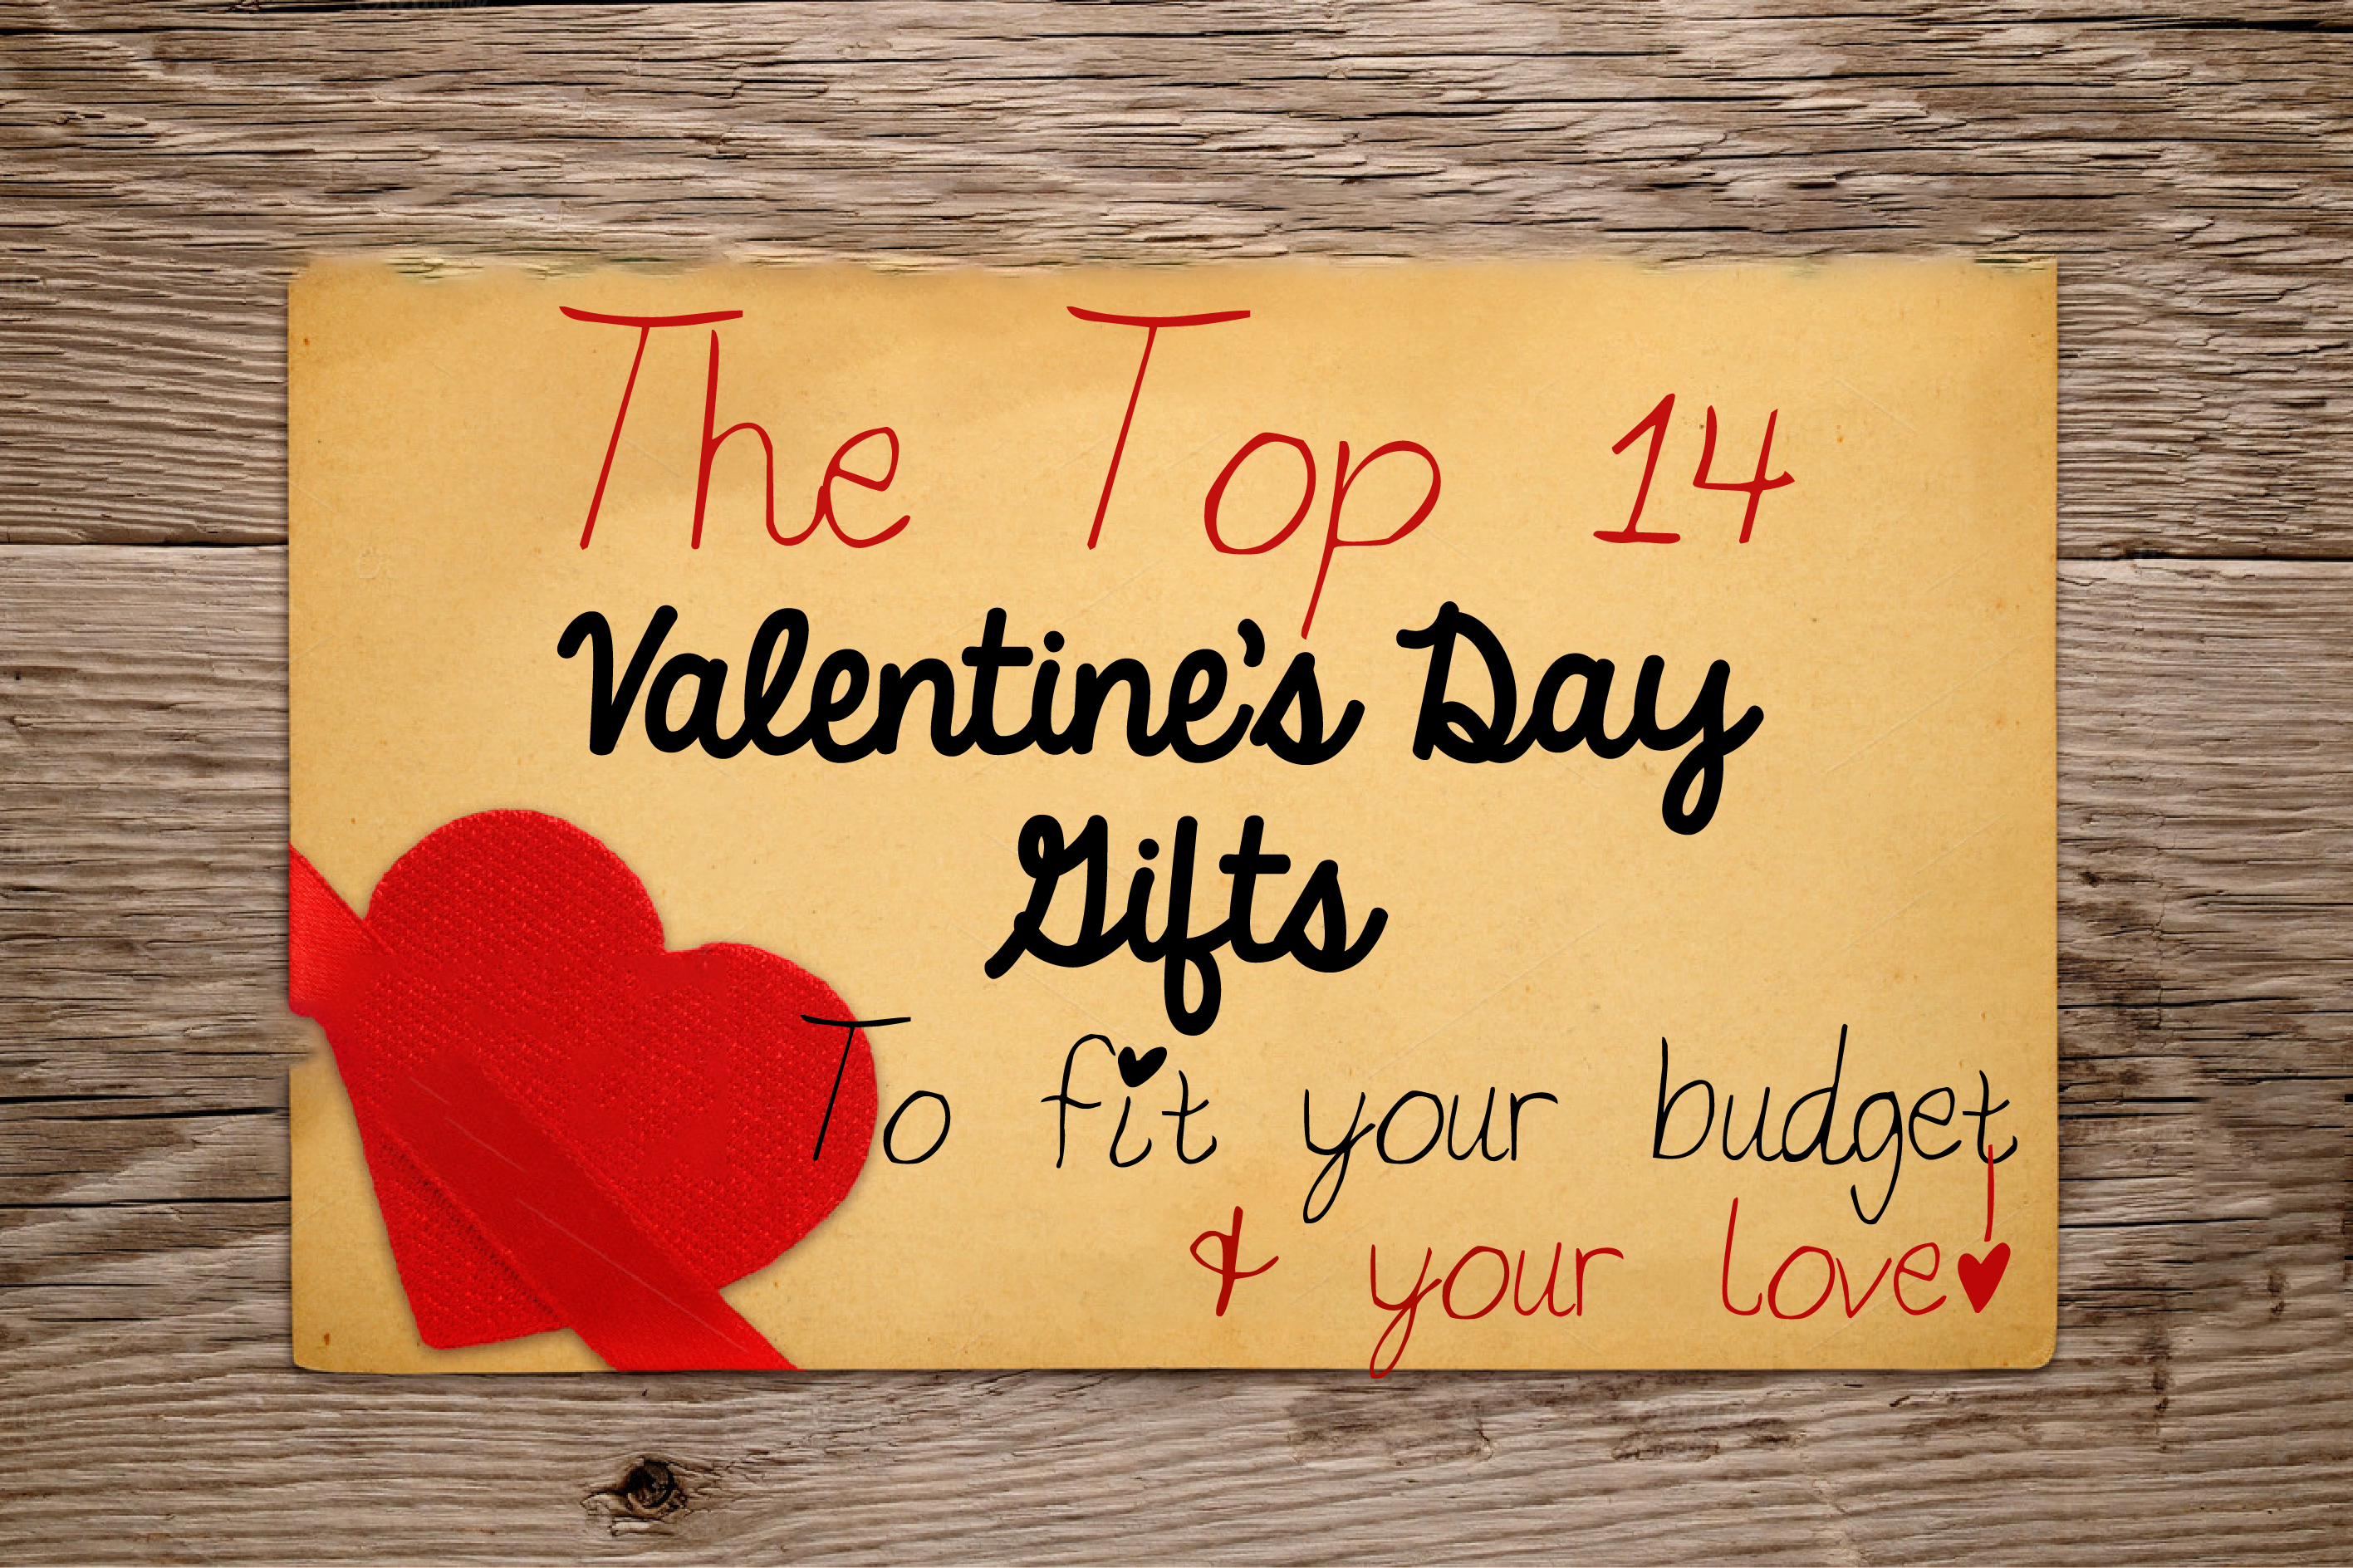 Top 14 Valentine's Day Gifts to Fit Your Budget and Your Love!